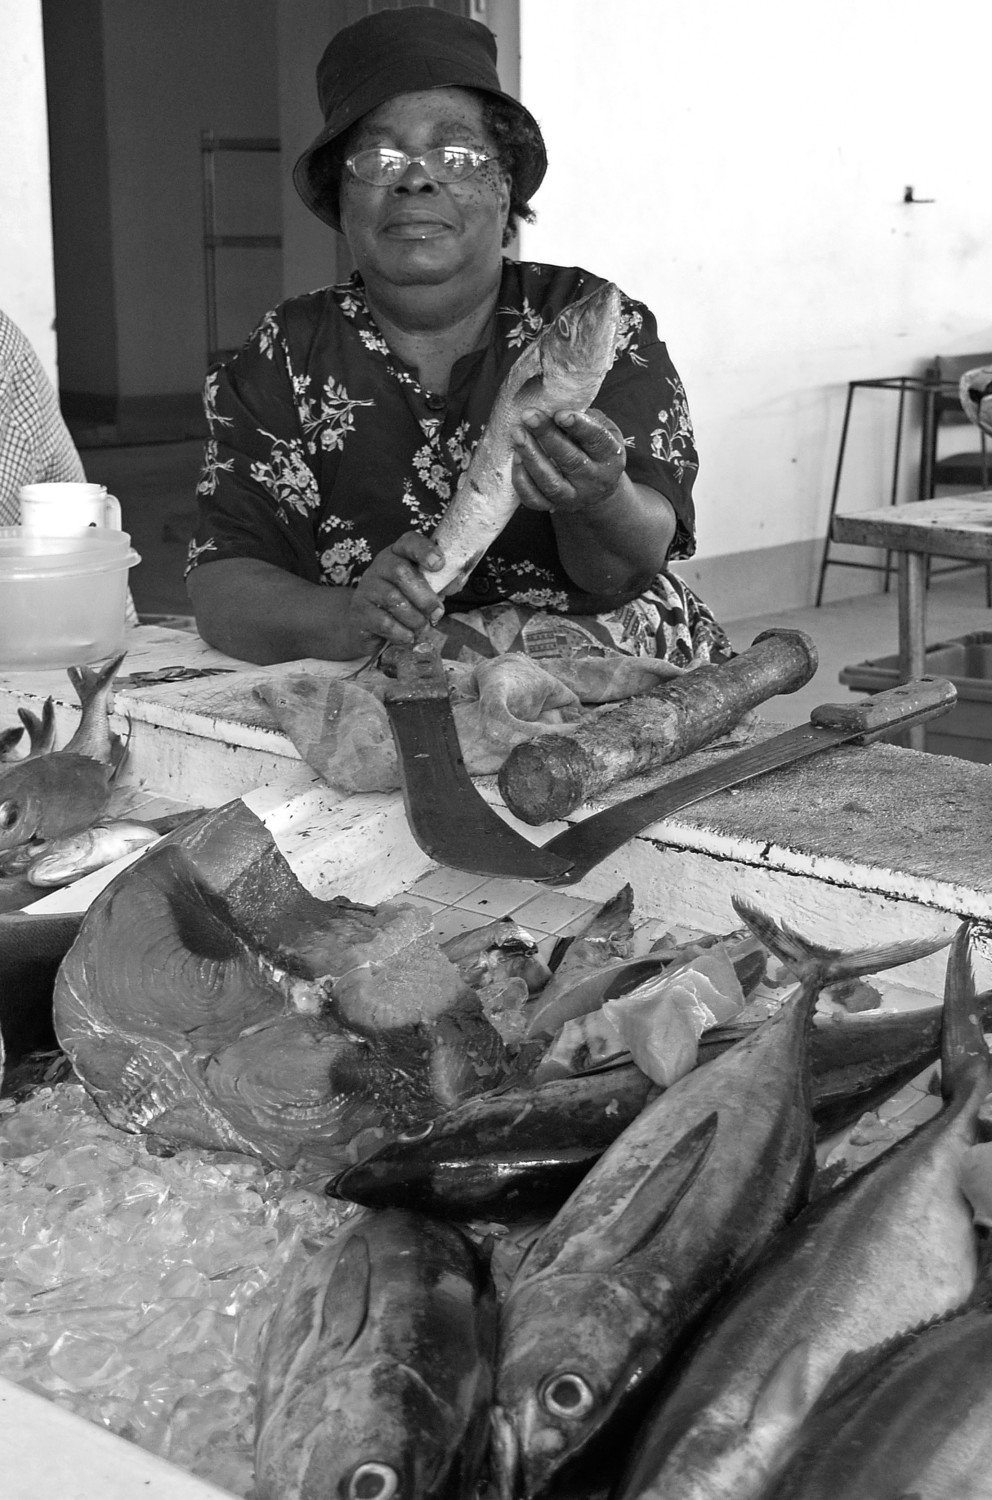 Fish lady, Grenada, May 2006